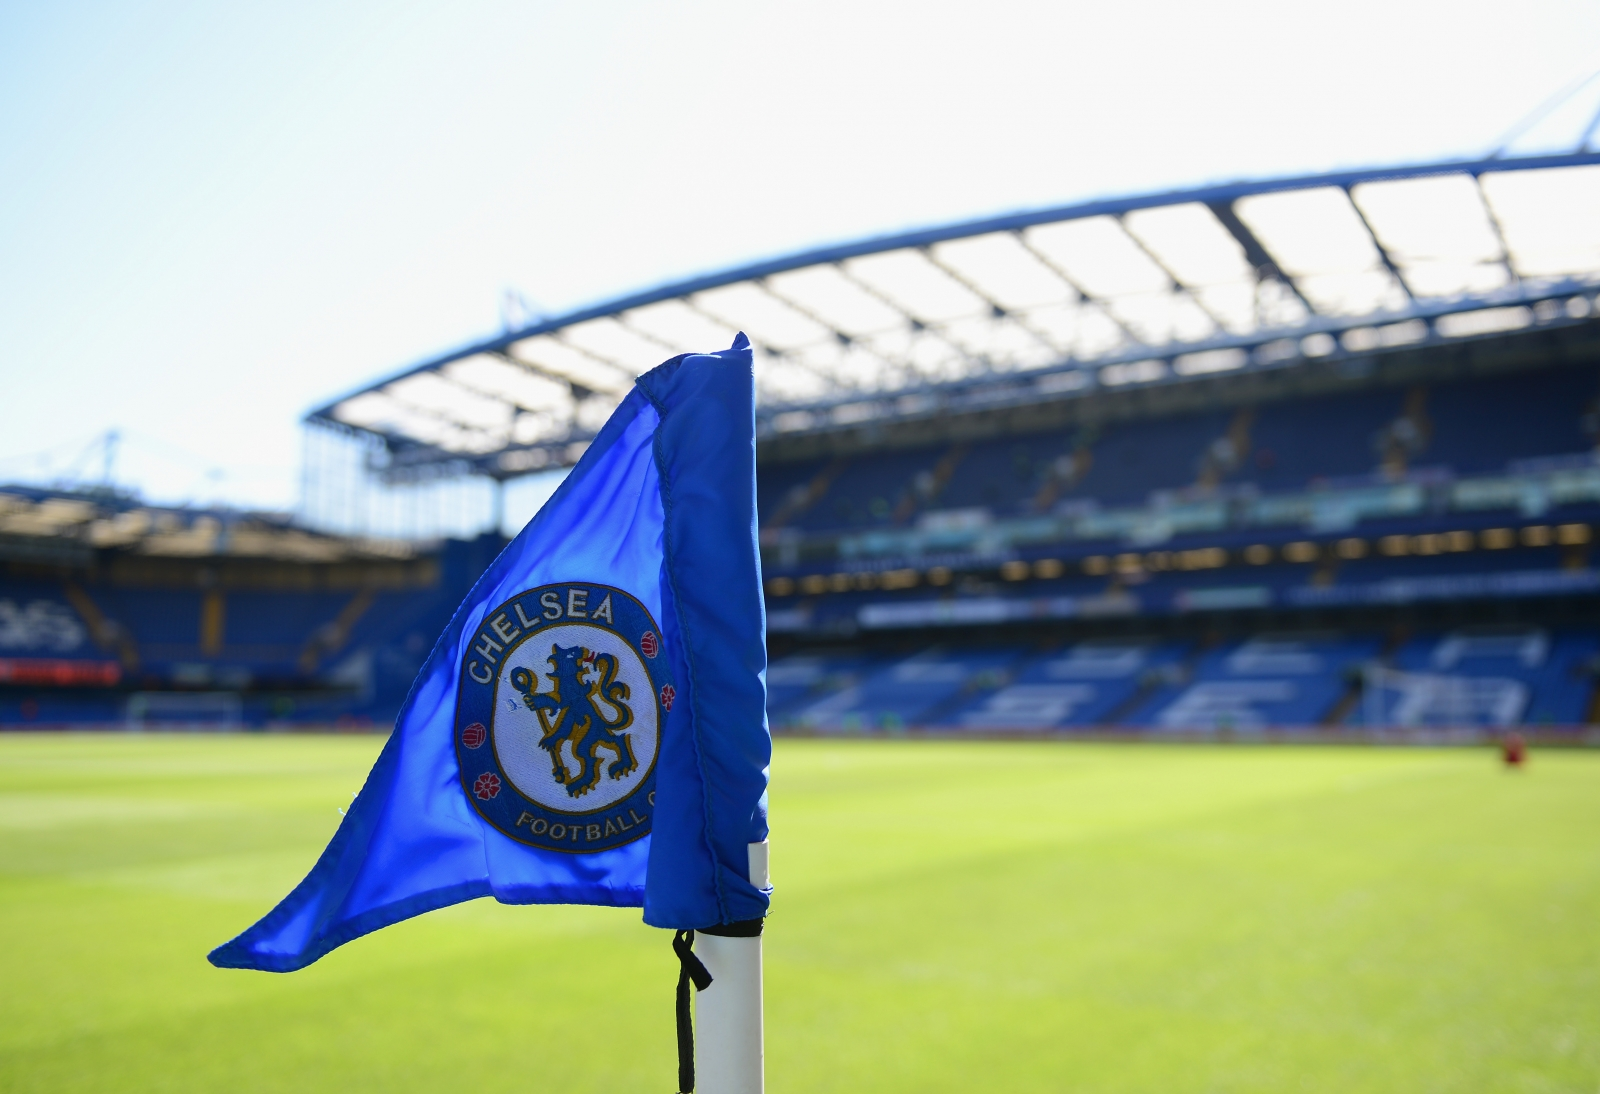 Chelsea fans firmly behind rebuild of 'spiritual home' Stamford Bridge and Twickenham relocation